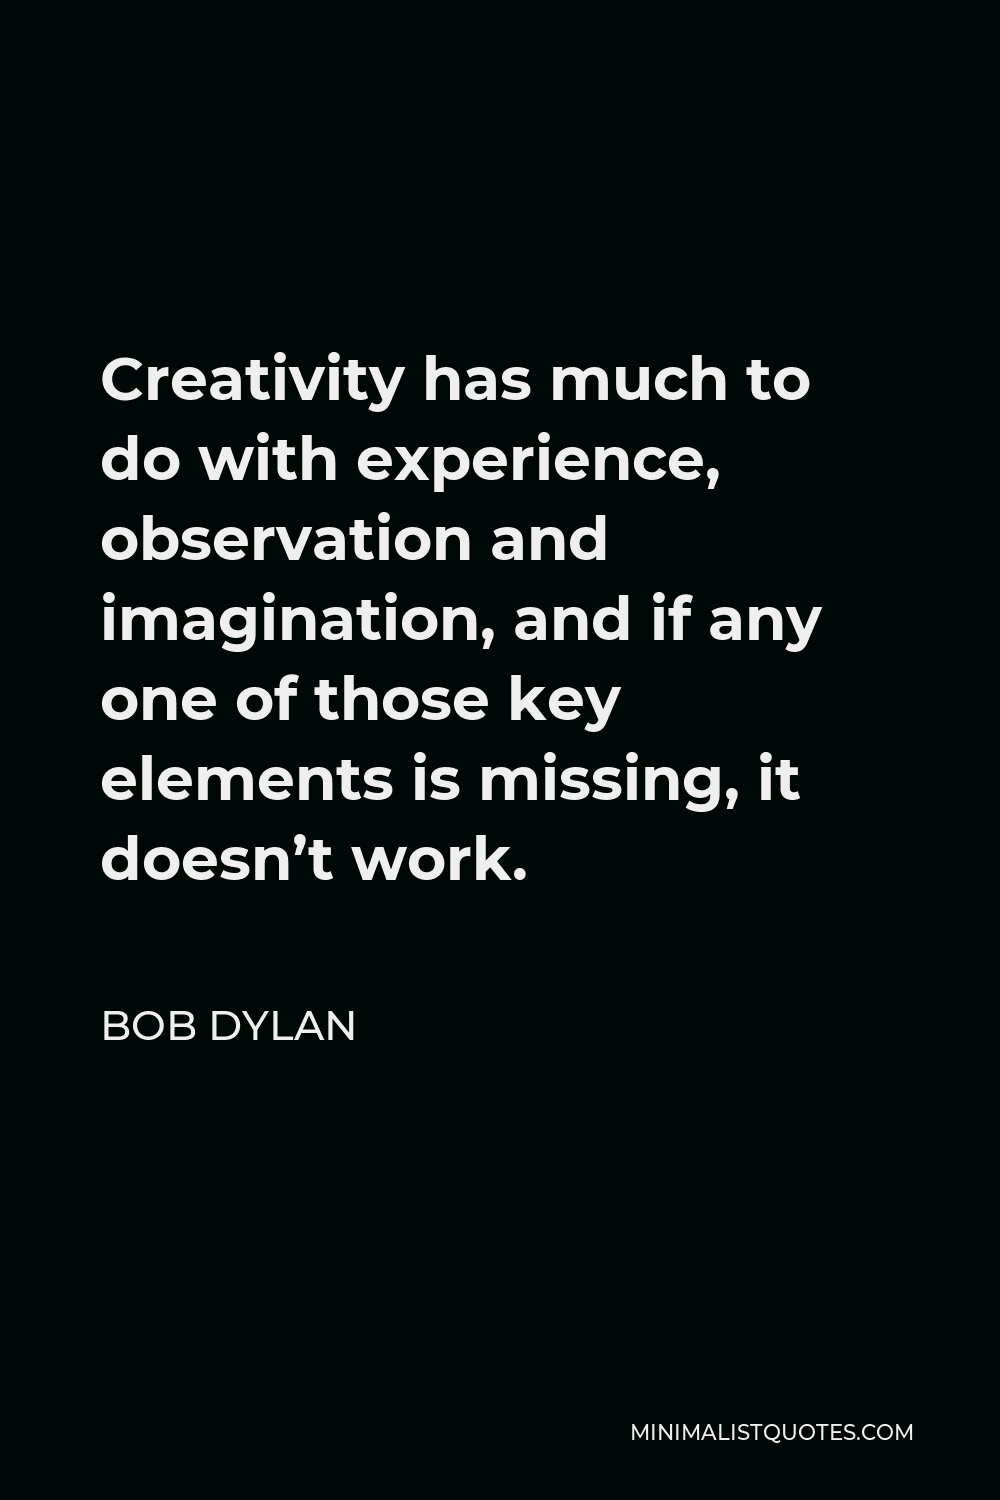 Bob Dylan Quote - Creativity has much to do with experience, observation and imagination, and if any one of those key elements is missing, it doesn't work.